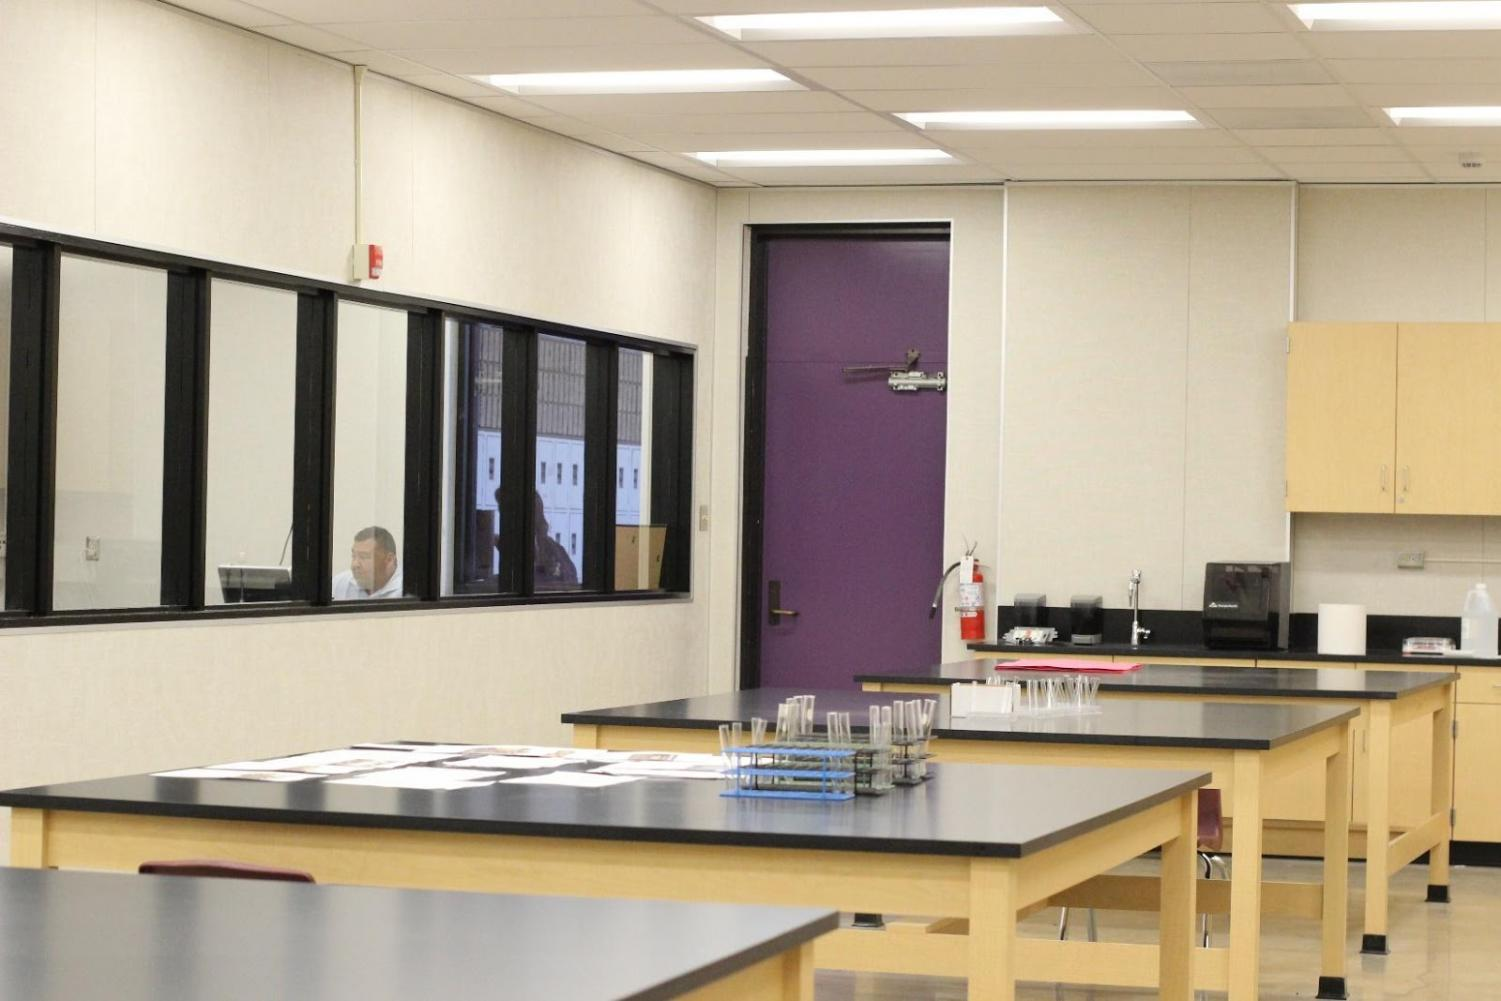 A new lab was opened next to the regular forensics classroom to allow students to carry out mock investigations.